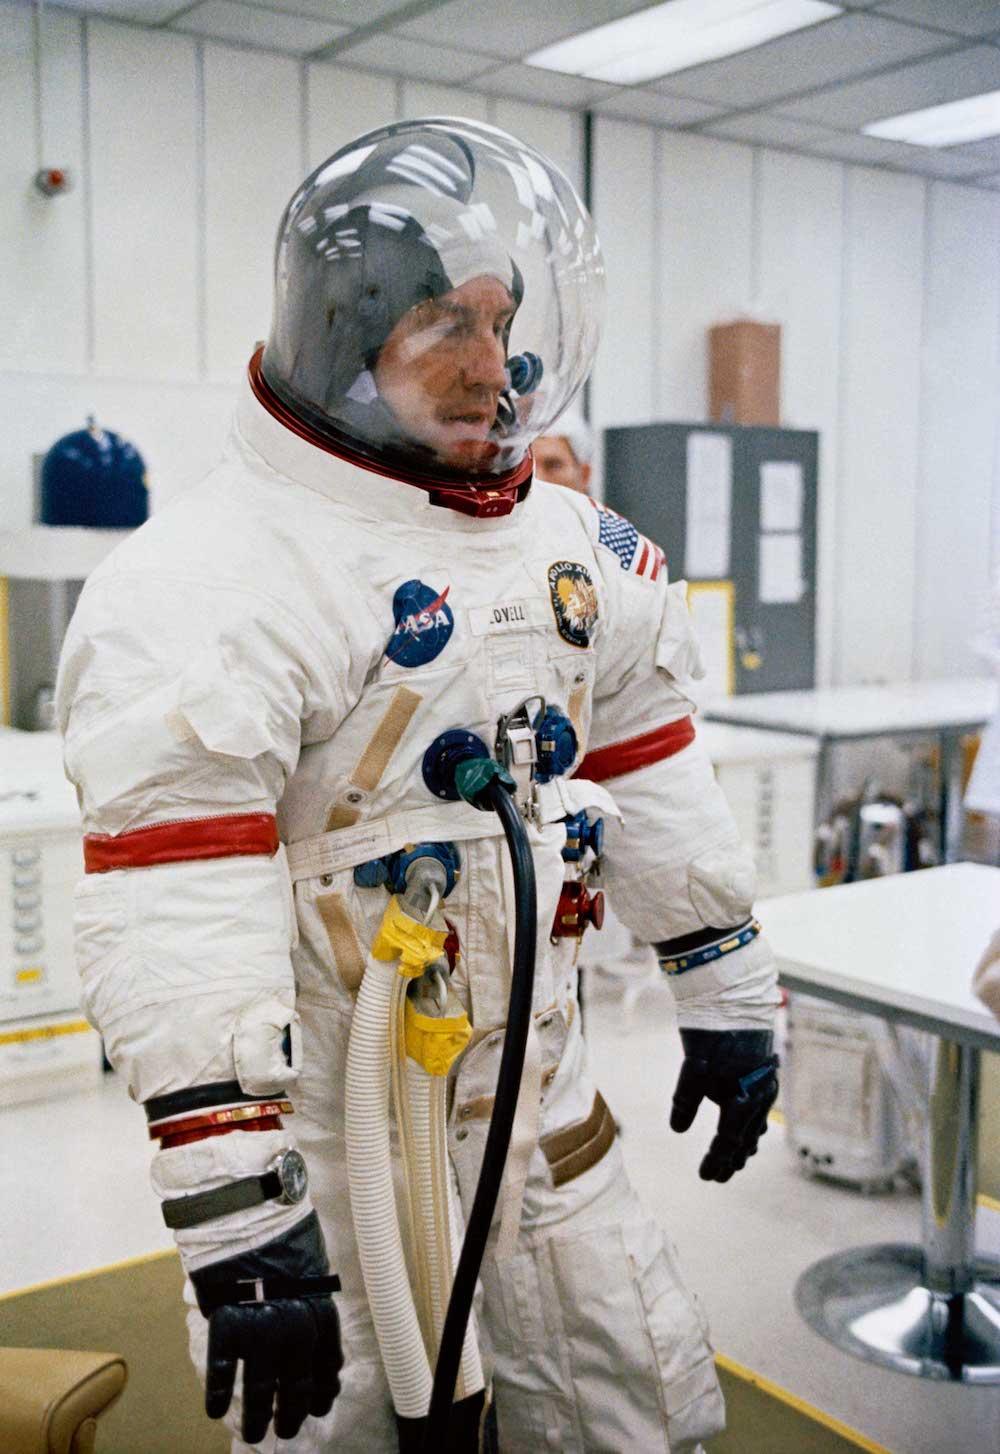 astronaut james Lovell jr naso apollo 13 speedmaster